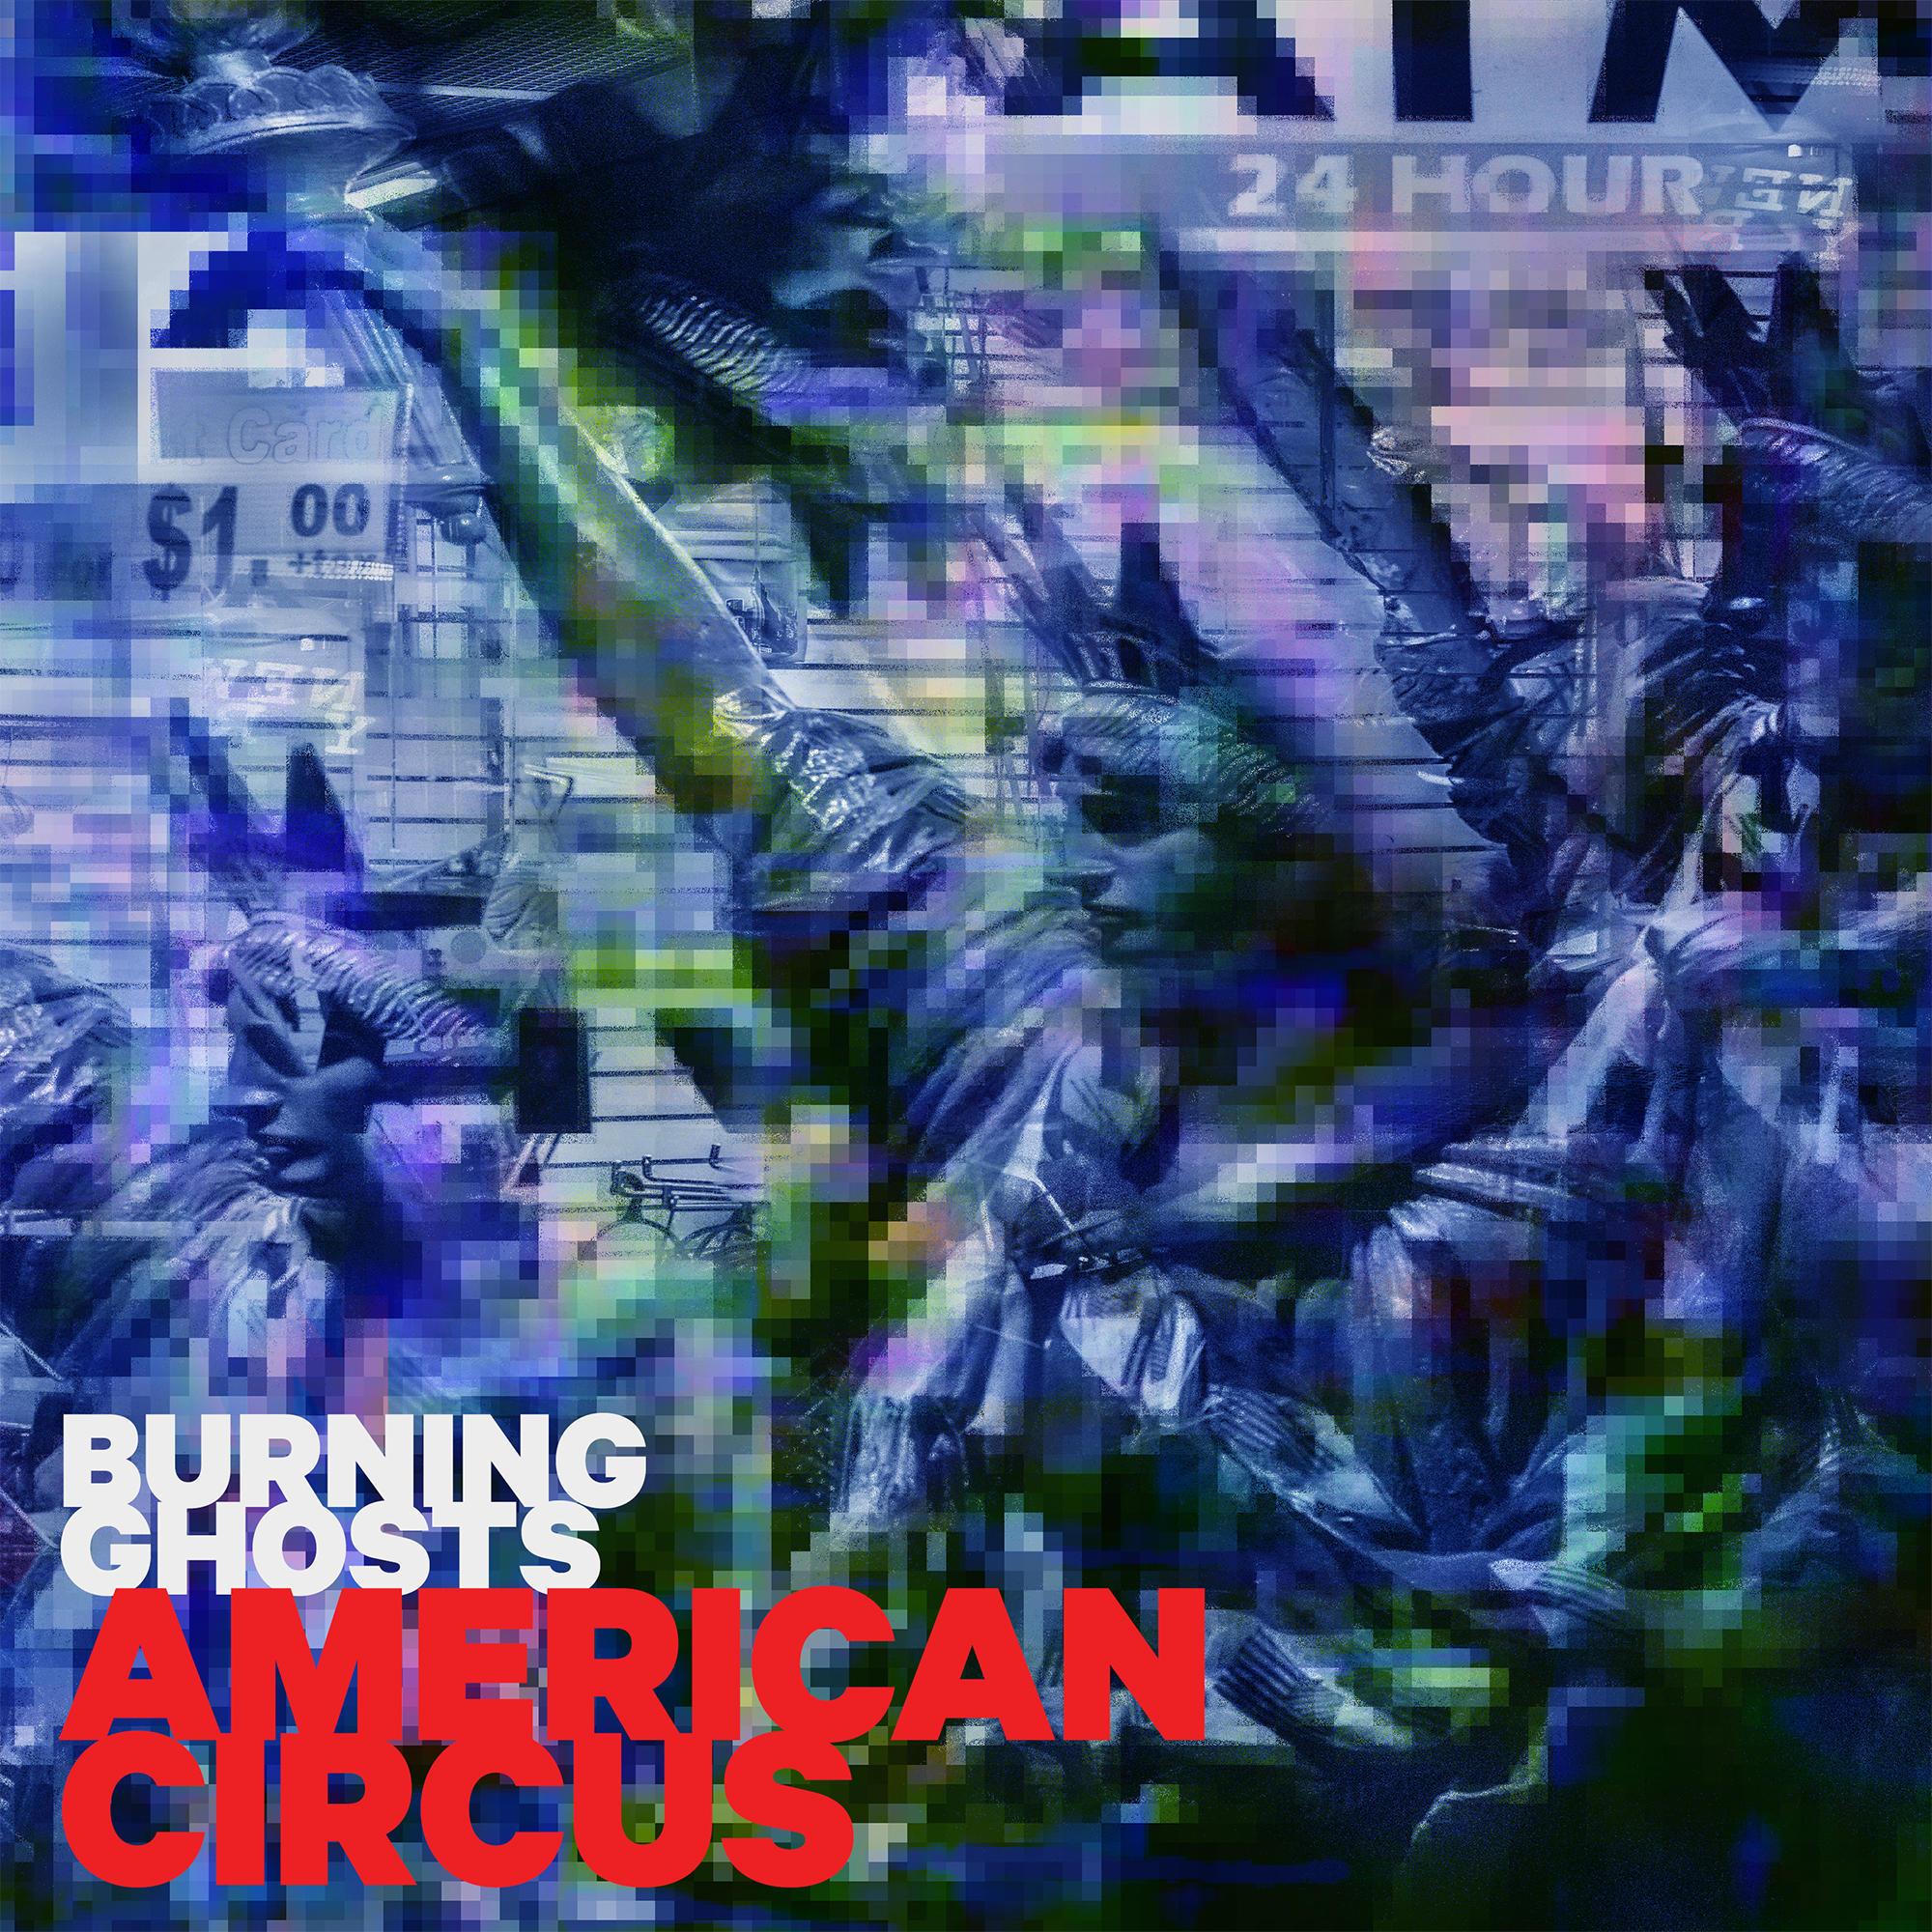 Burning-Ghosts-American-Circus.jpg